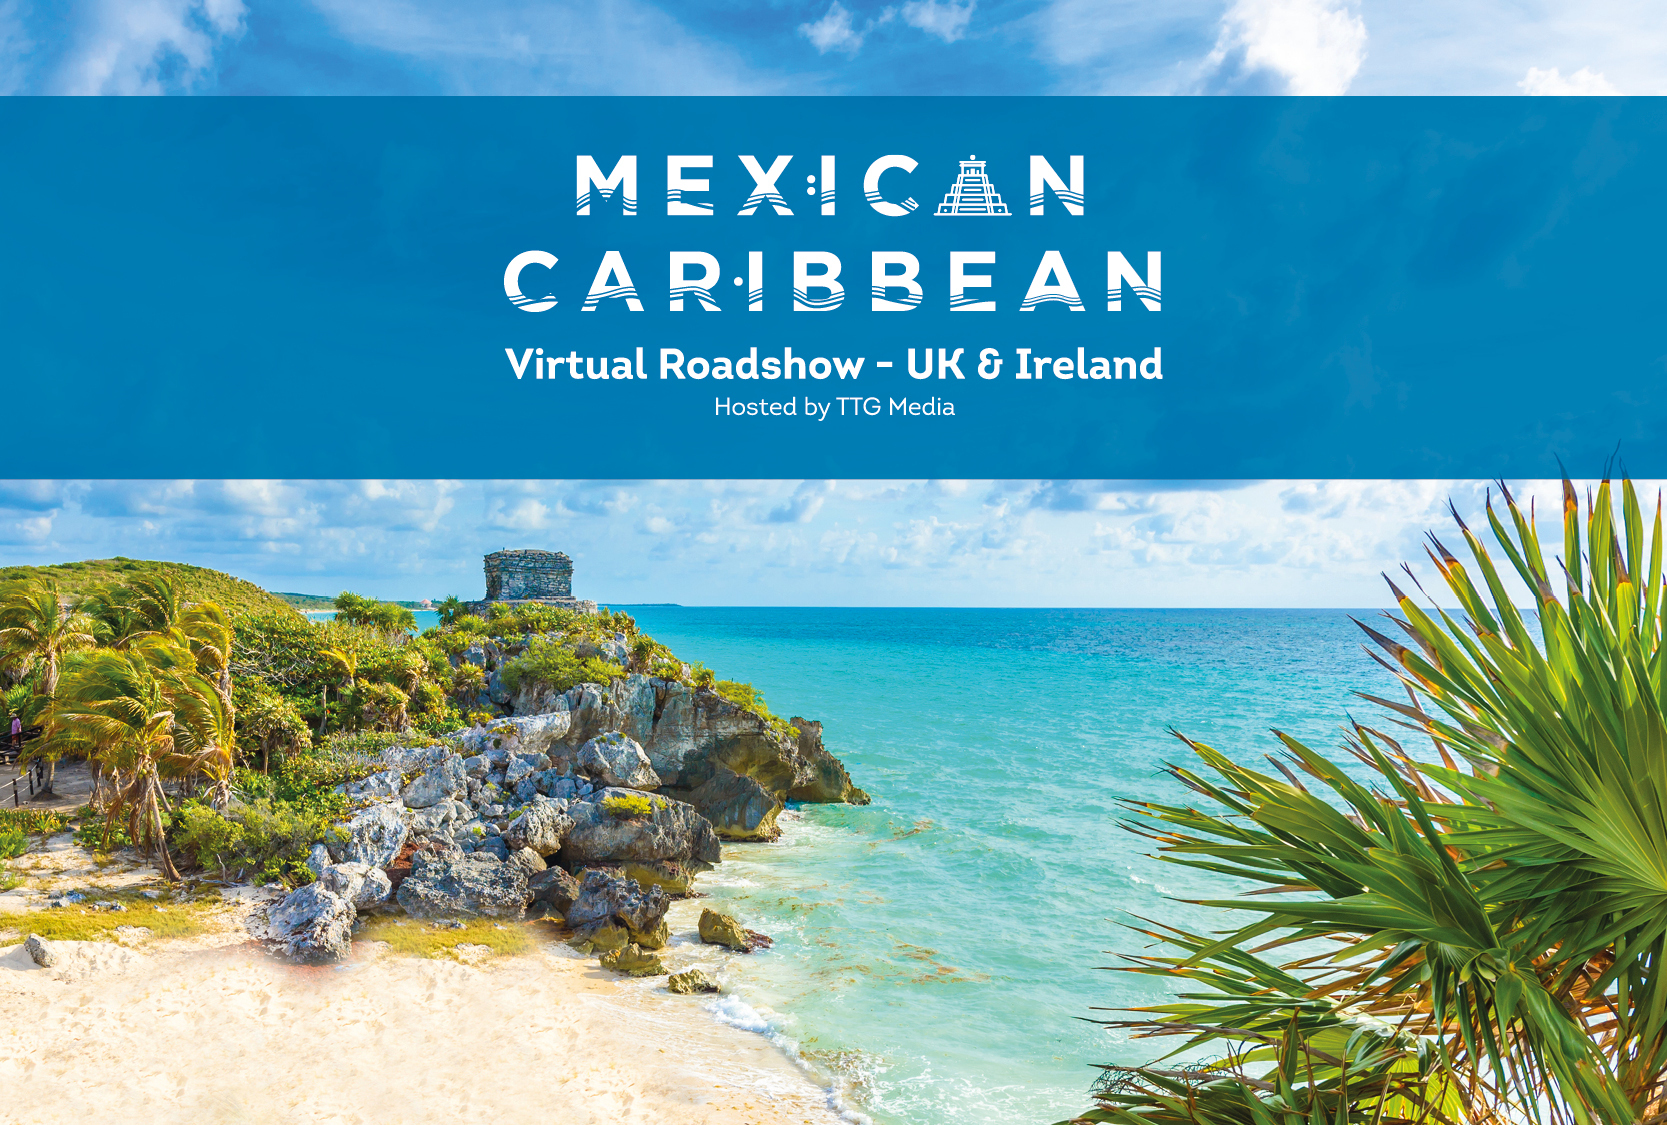 Join TTG's Mexican Caribbean Virtual Roadshow for free